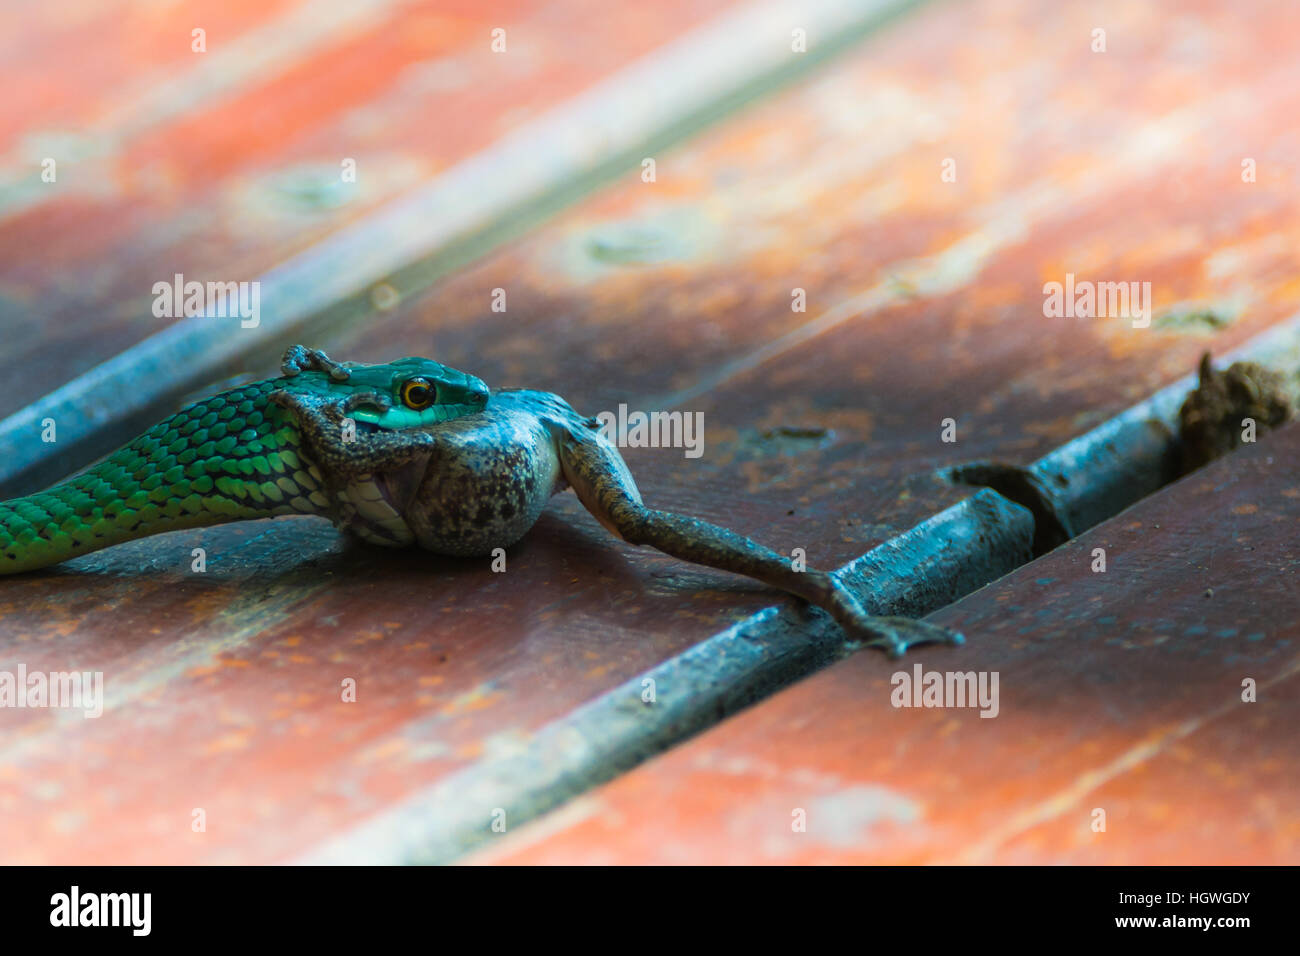 Green spotted tree snake eating frog Stock Photo